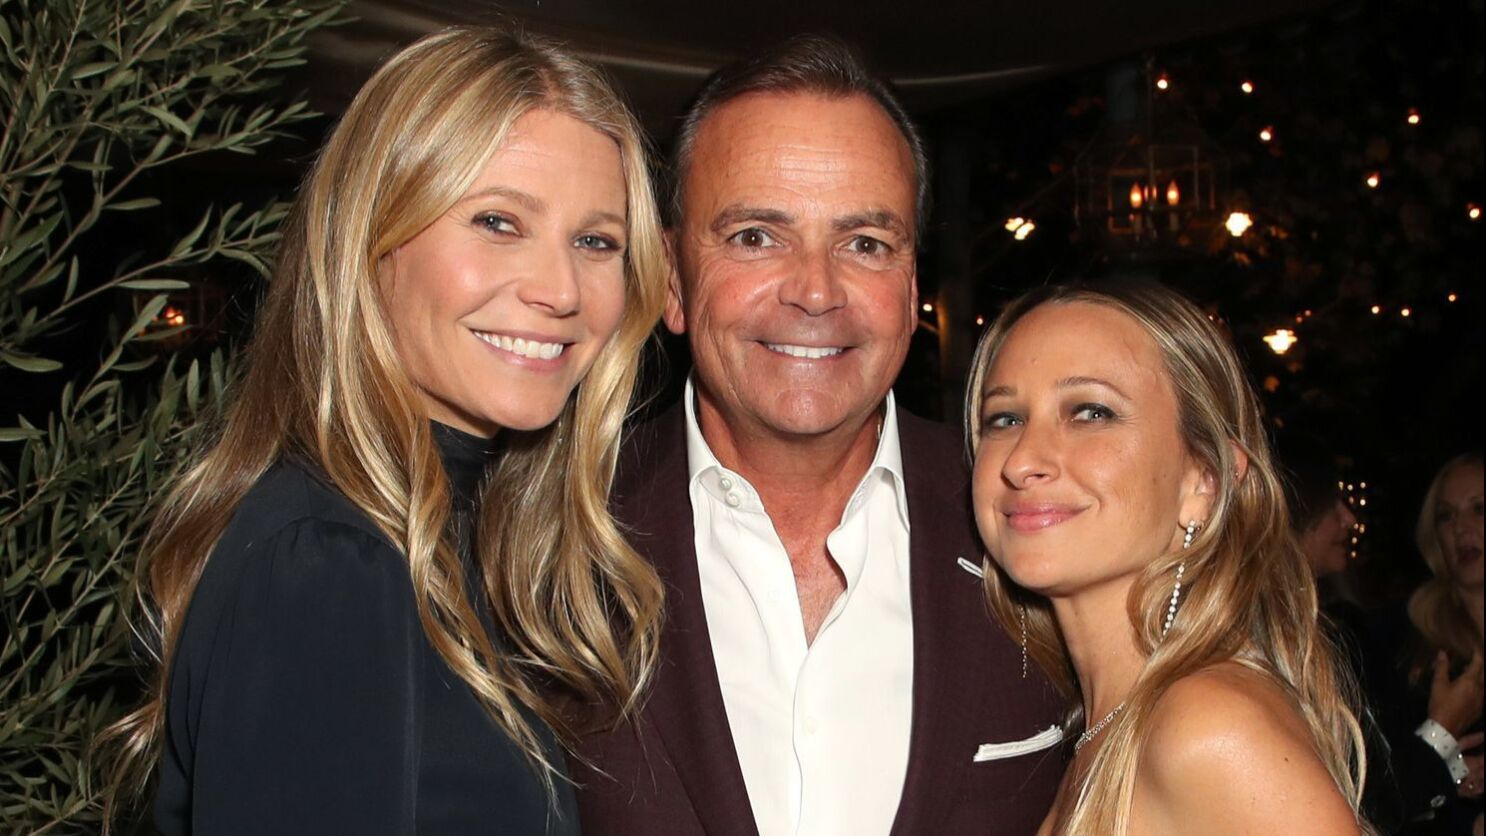 Reese Witherspoon, Gwyneth Paltrow toast Jennifer Meyer